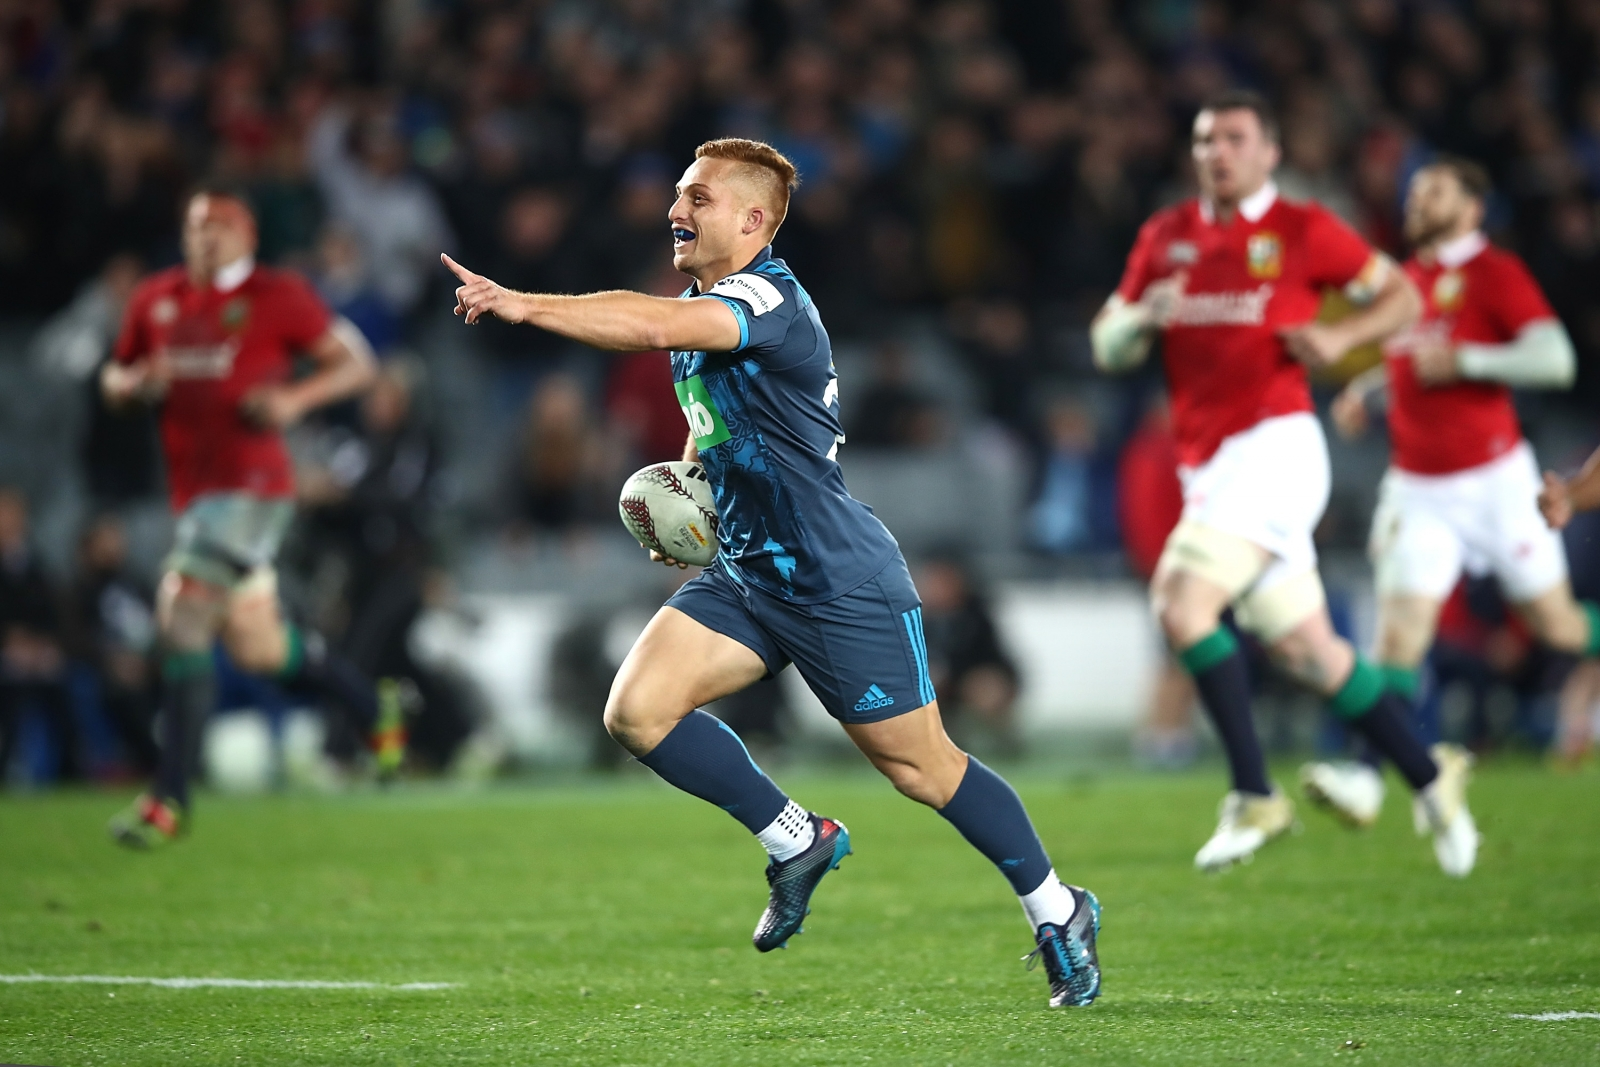 Wyn Jones to lead revamped Lions against Crusaders